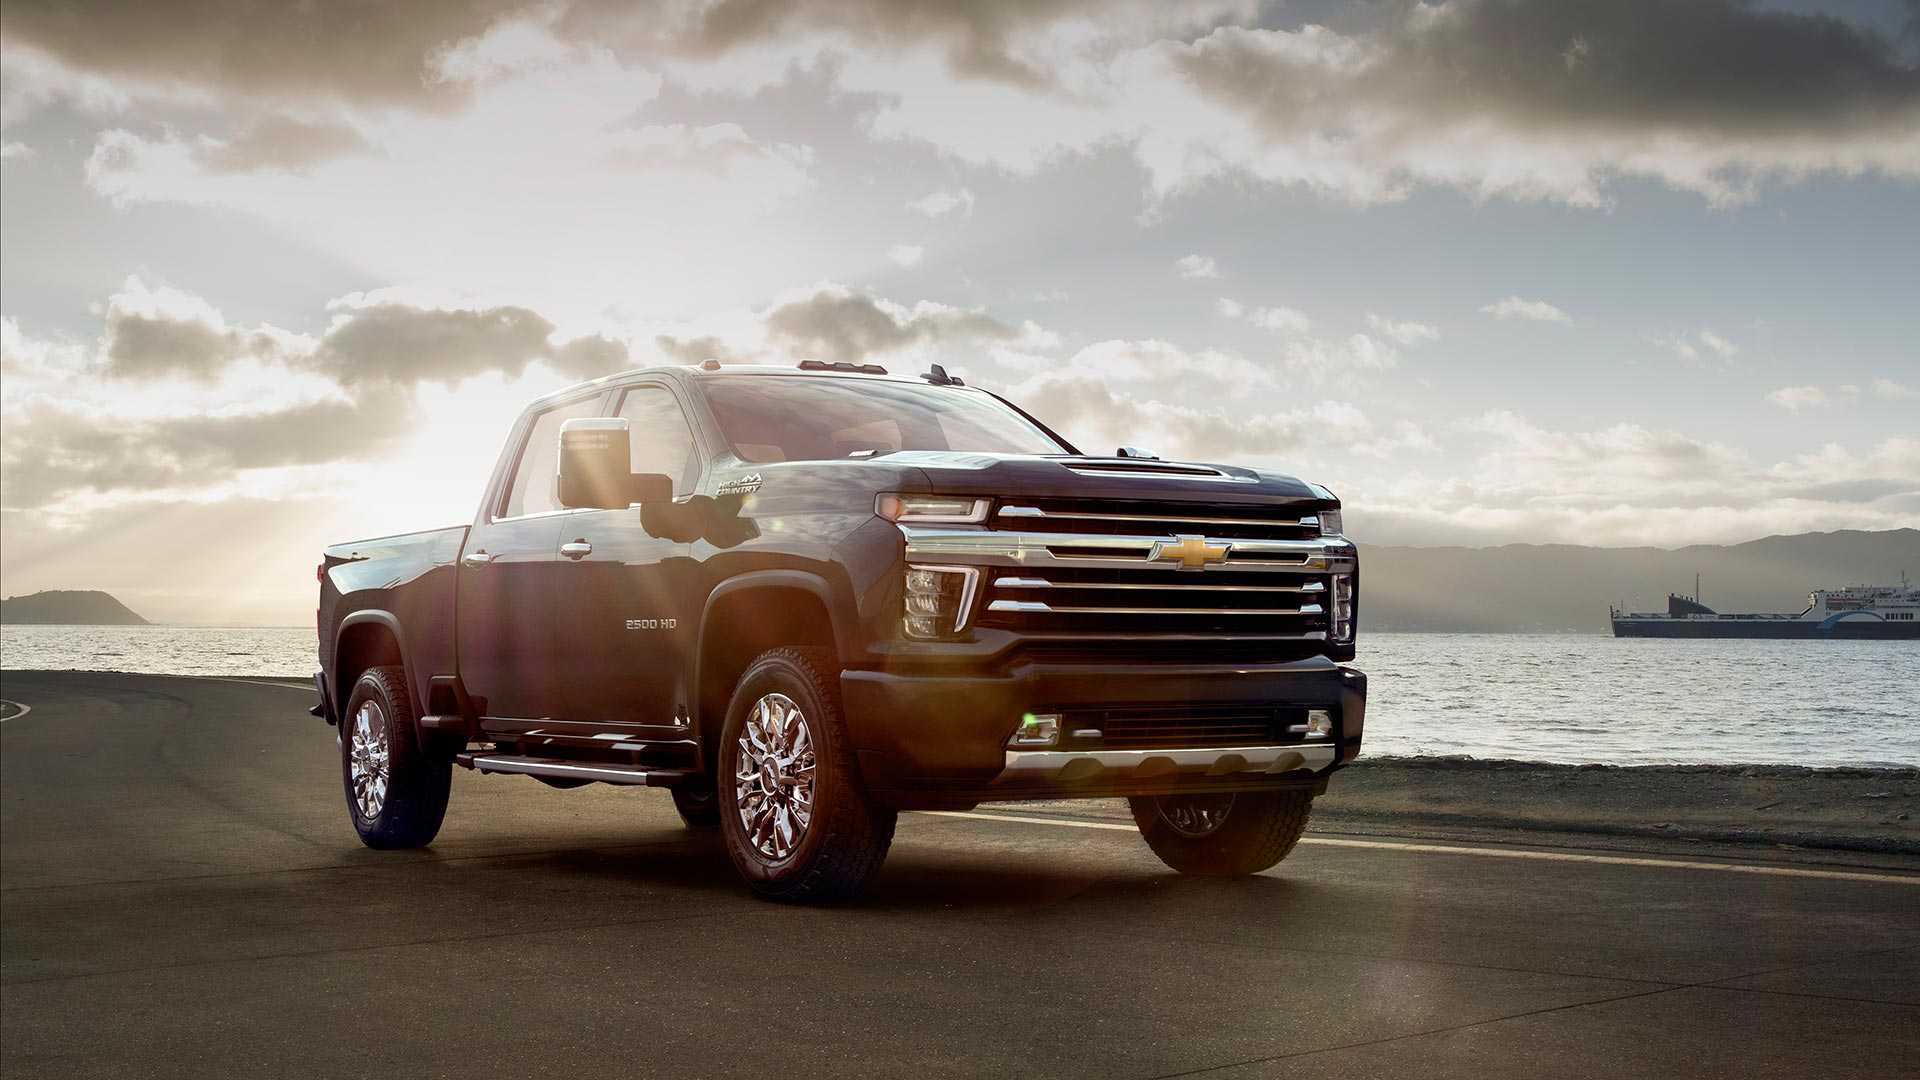 86 Concept of Chevrolet High Country 2020 Redesign and Concept by Chevrolet High Country 2020